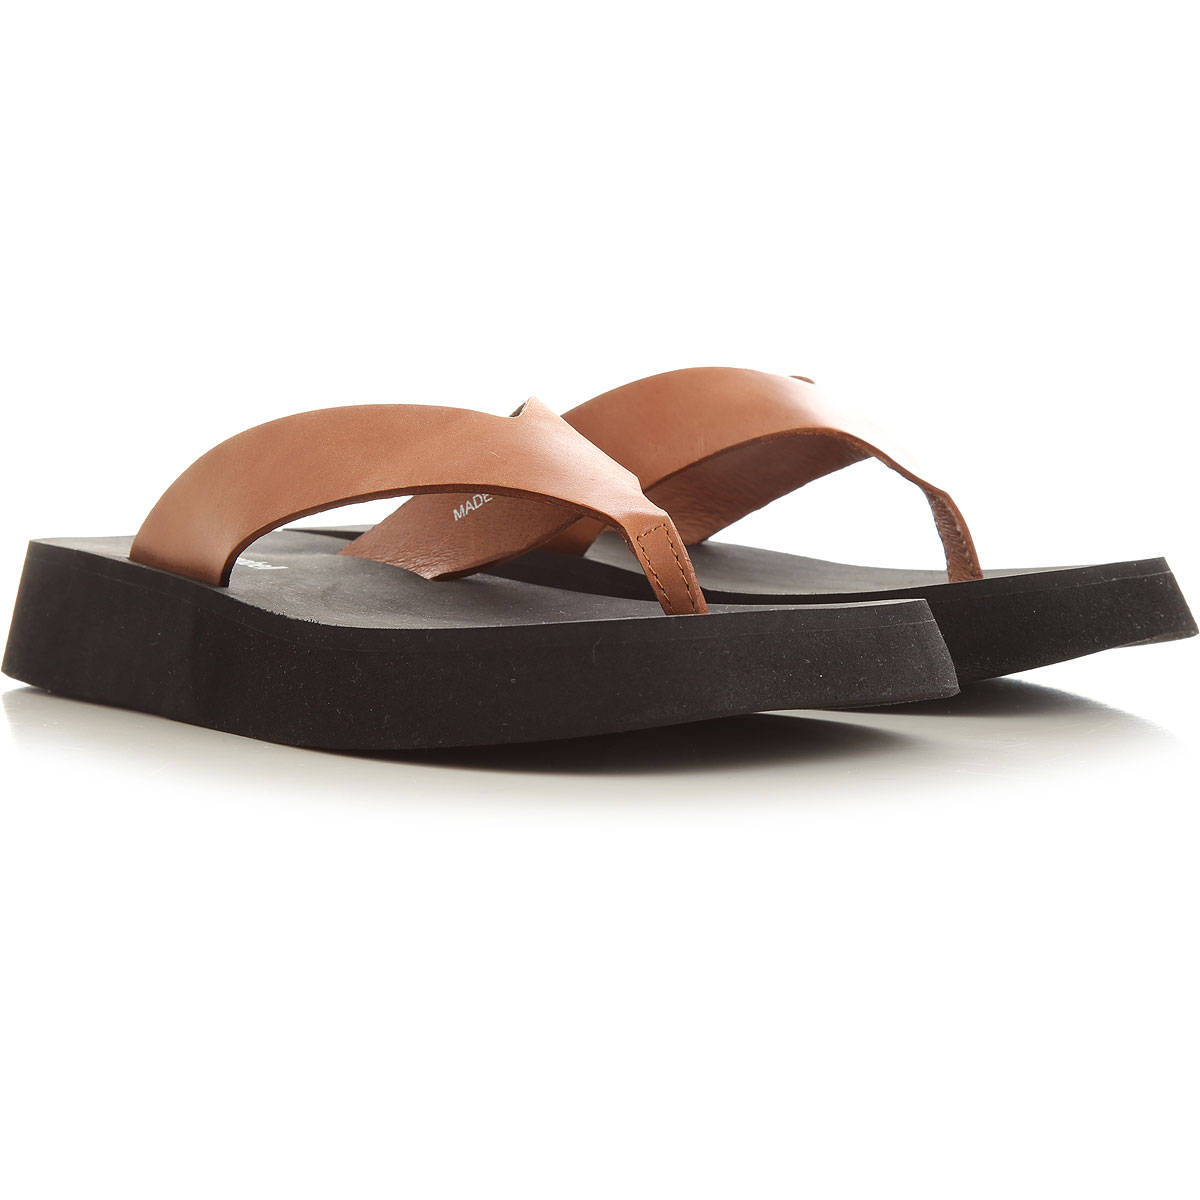 Ash Sandals for Women, Brown, PVC, 2021, 10 11 6 7 8 9 from Ash